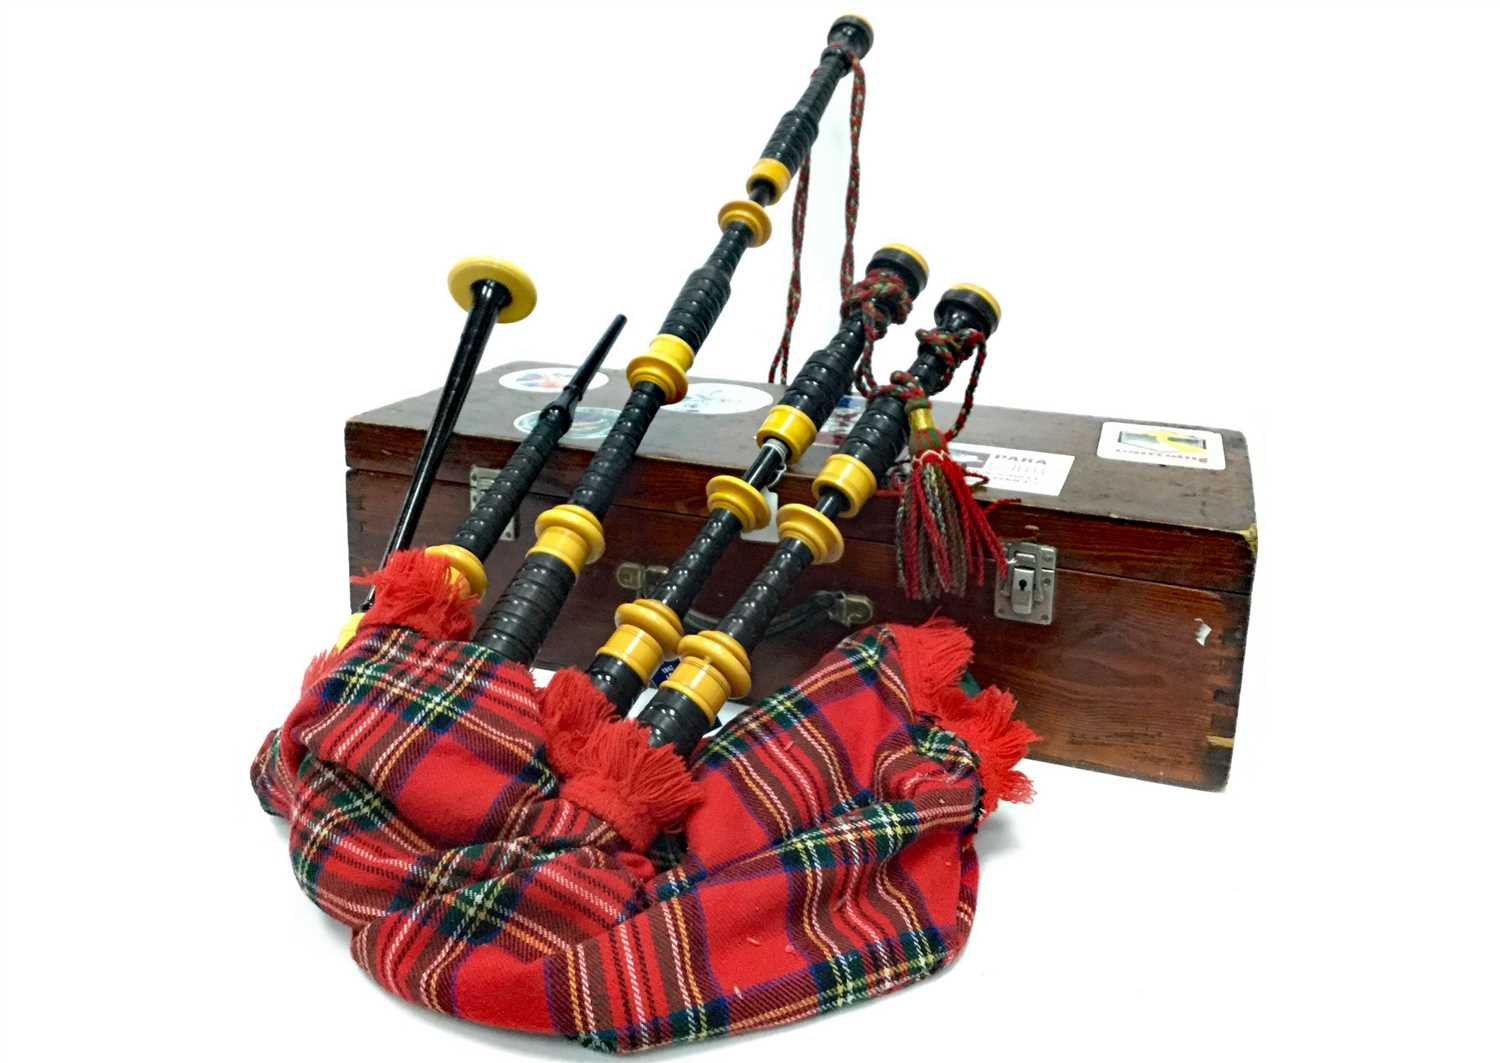 Lot 13-A SET OF HIGHLAND BAGPIPES POSSIBLY BY R.G. HARDIE OF GLASGOW